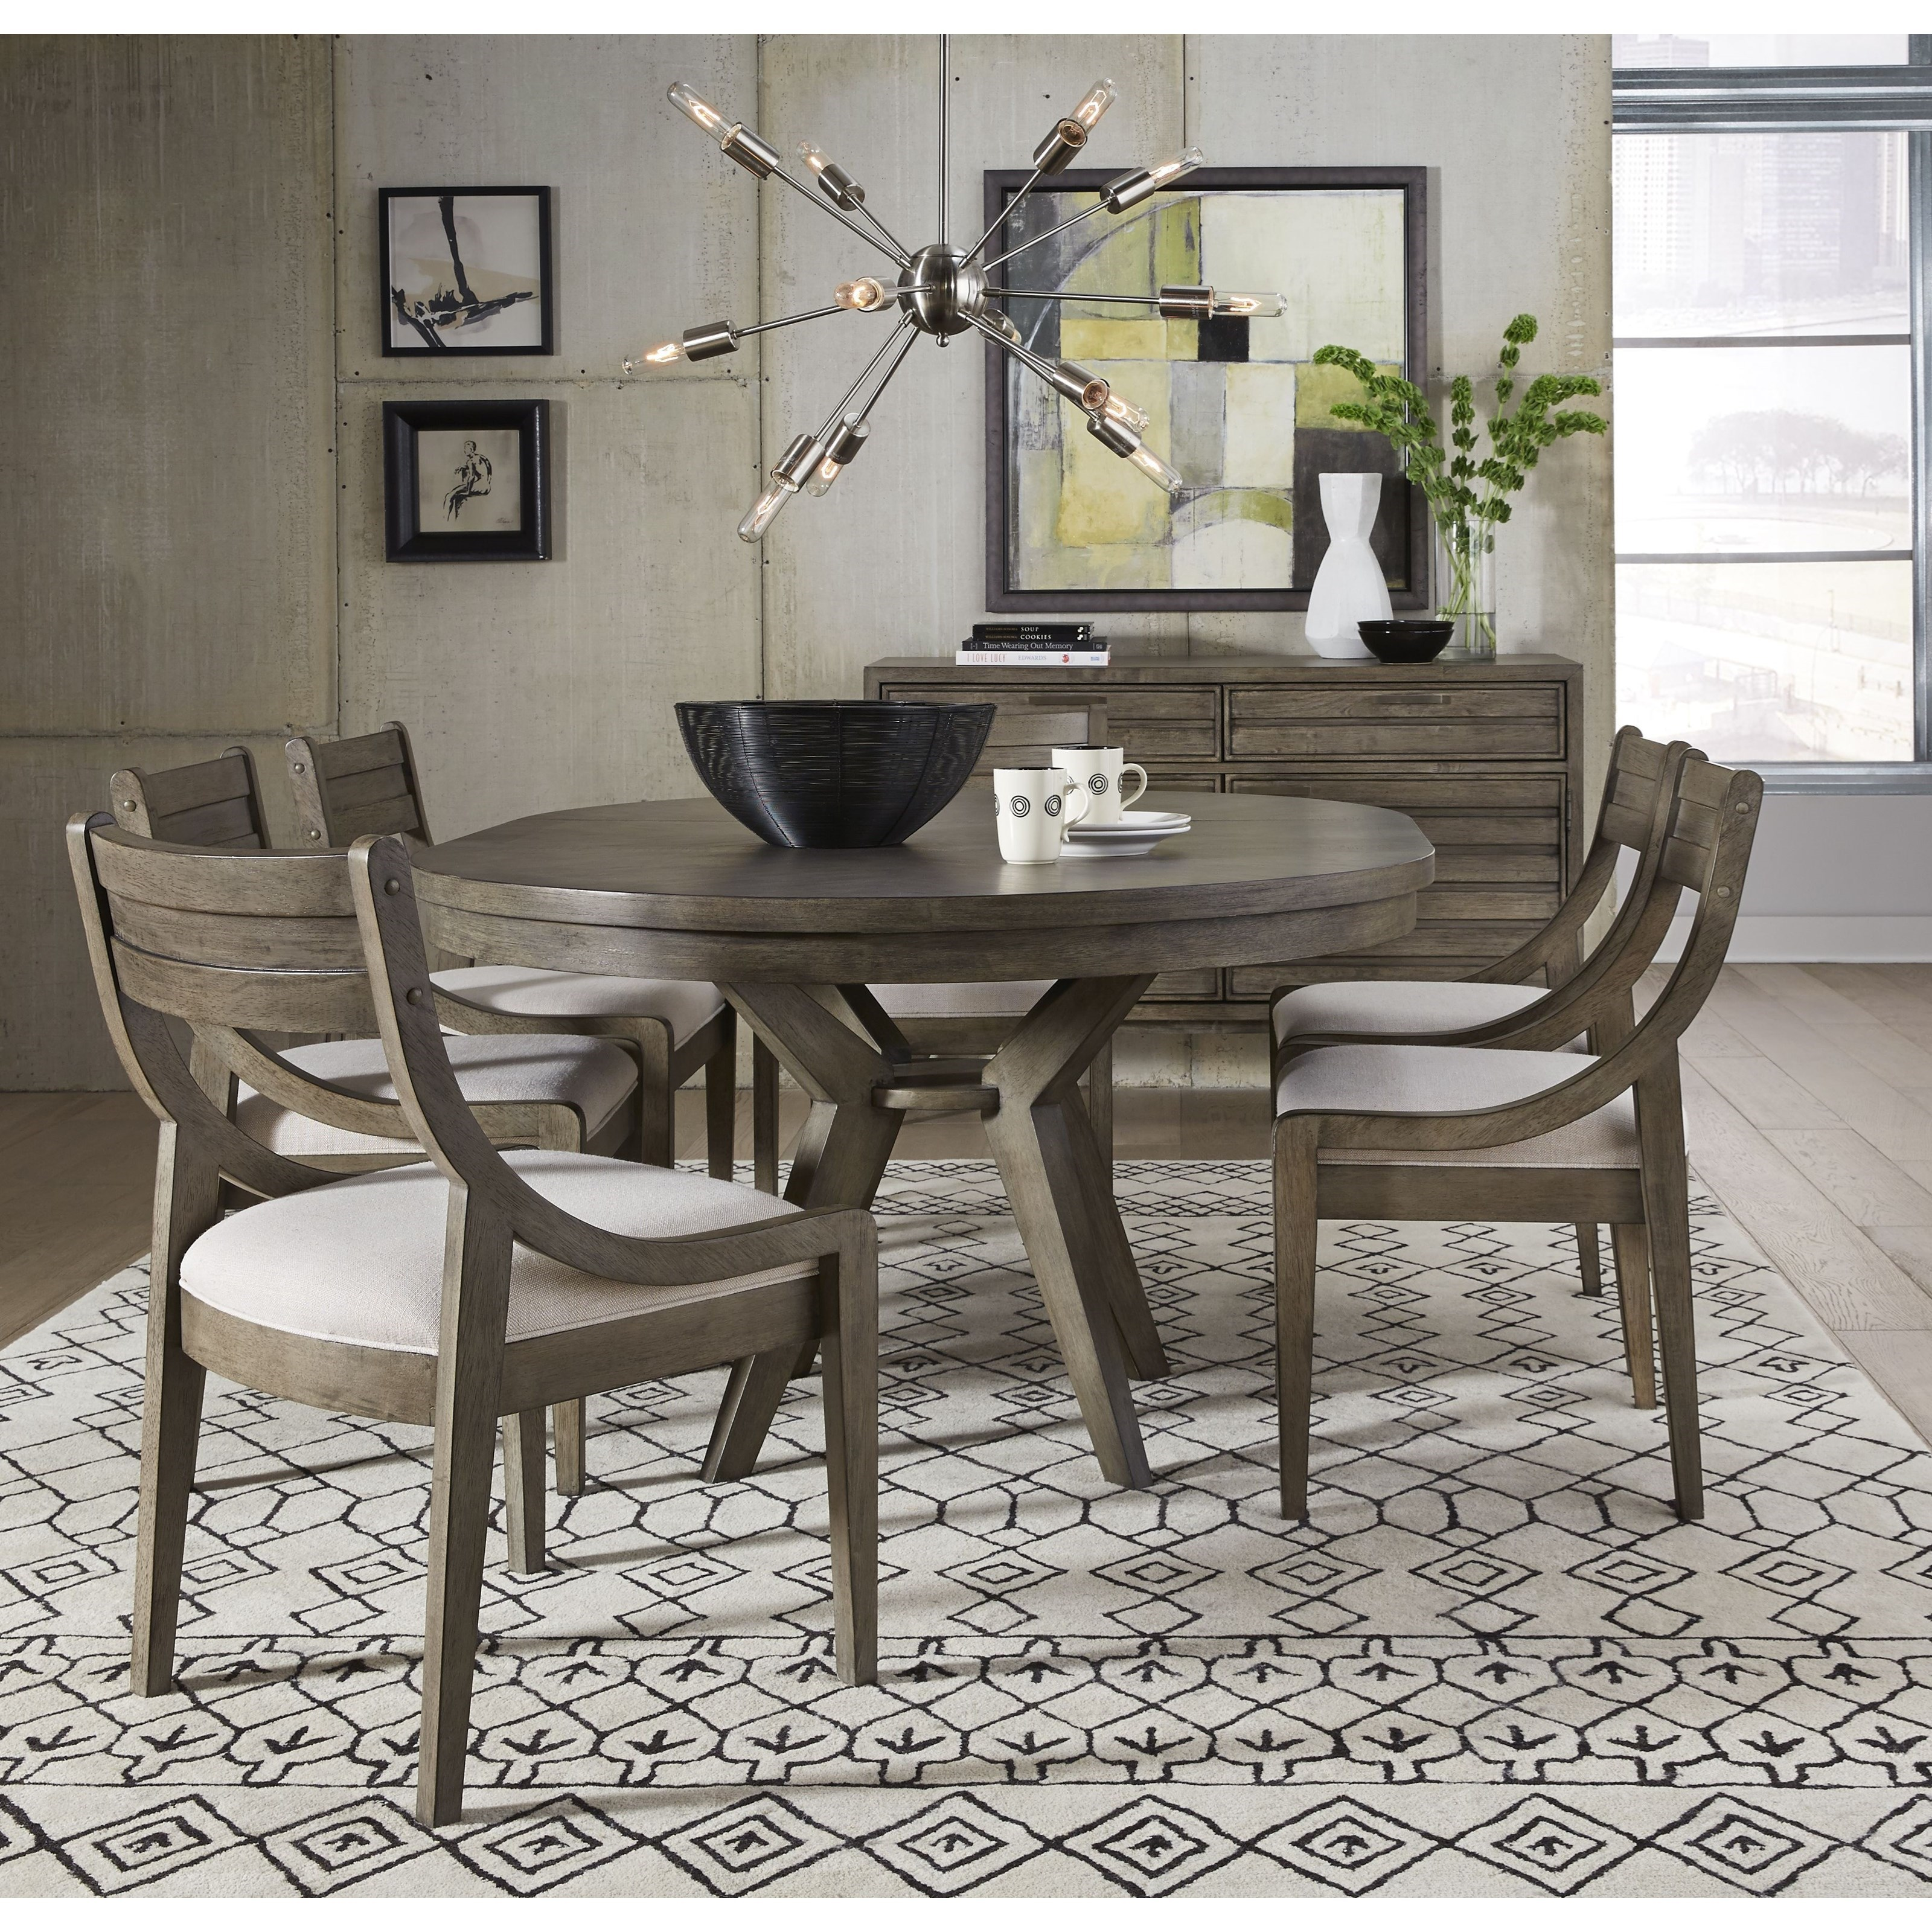 Greystone Formal Dining Room Group by Legacy Classic at Johnny Janosik